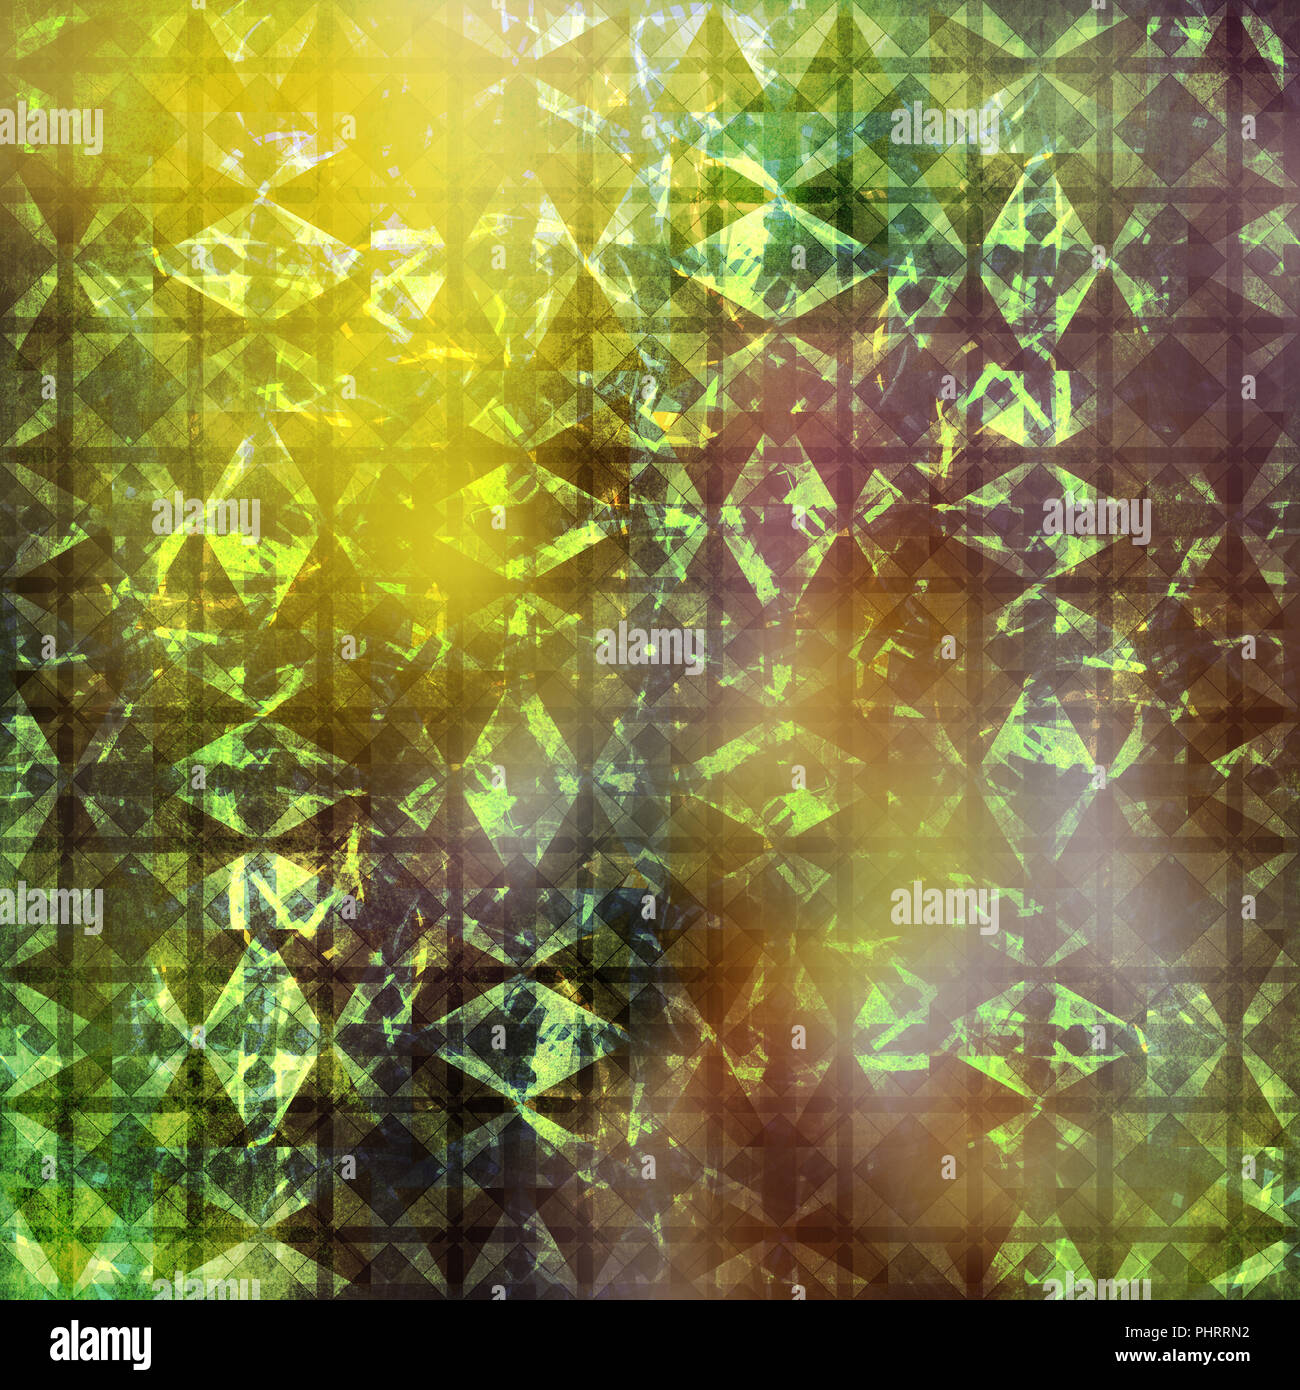 abstract mixed media background, arabesque pattern art - Stock Image